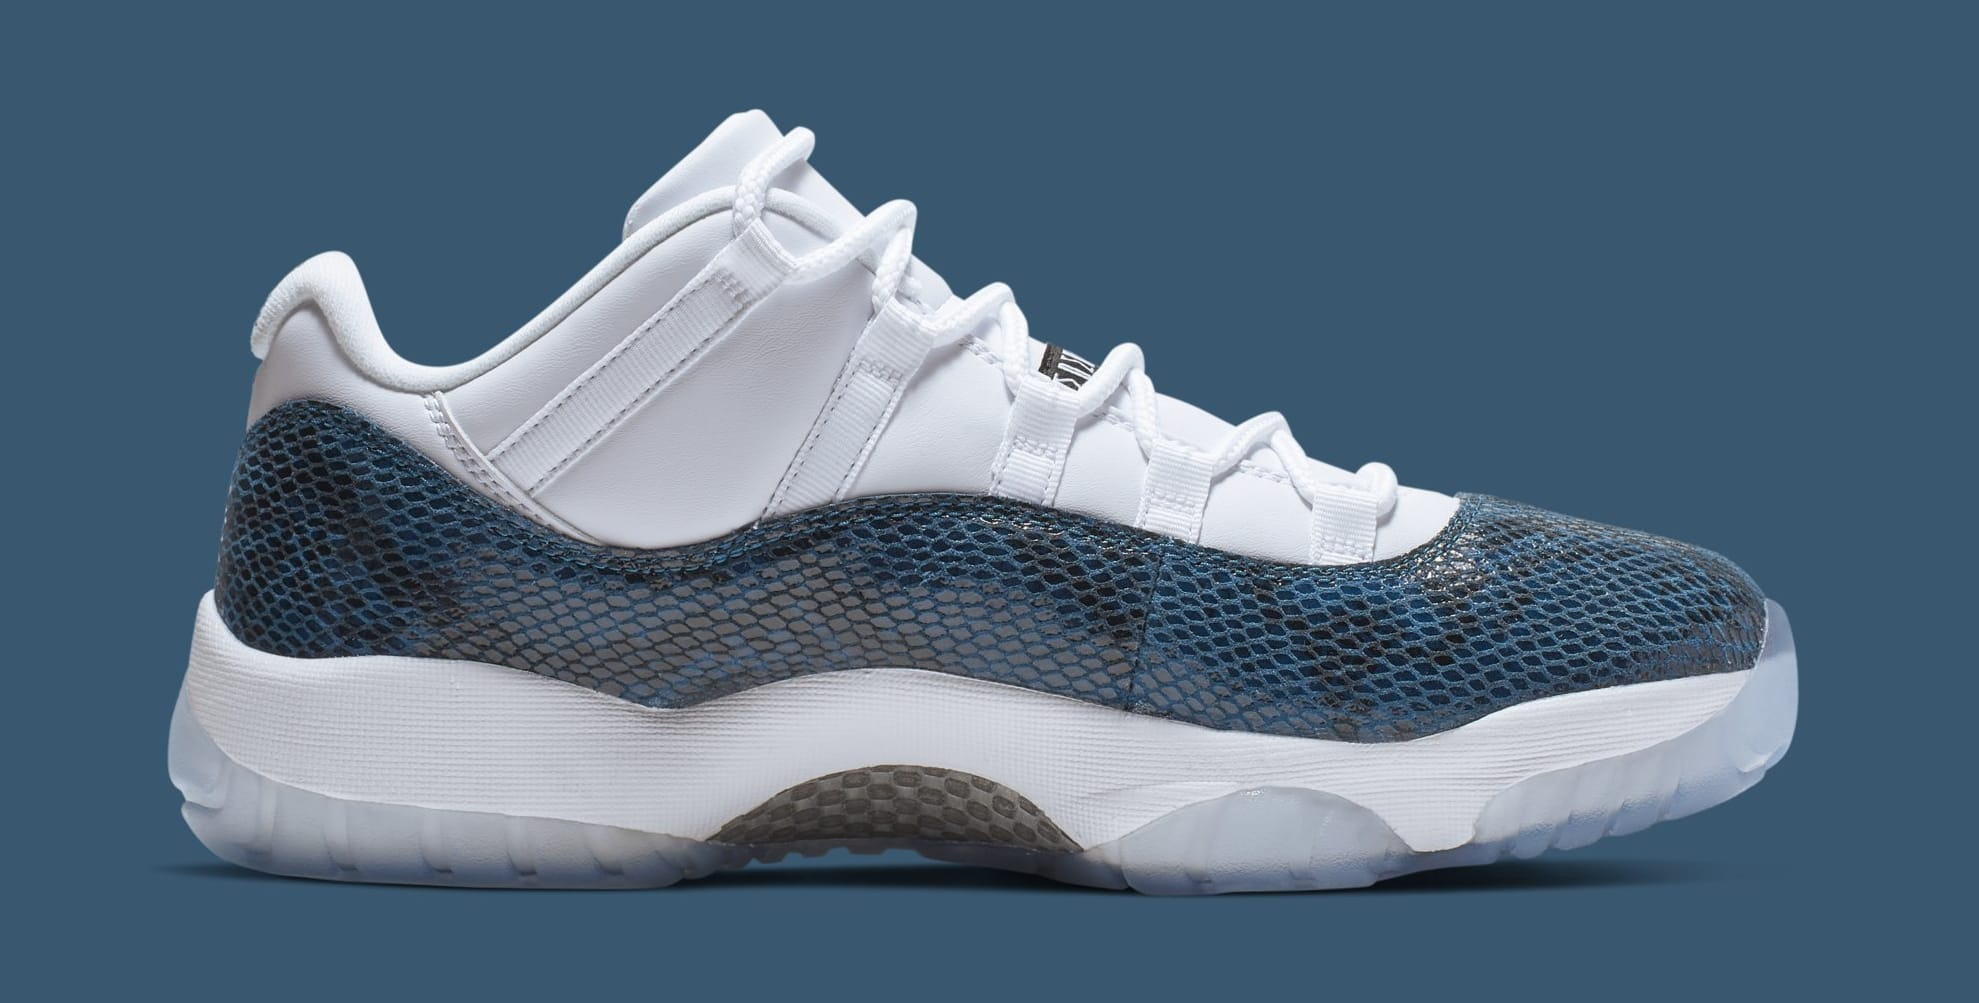 3d408b4693a0 Image via Nike Air Jordan 11 Low  Blue Snakeskin  CD6846-102 (Medial)